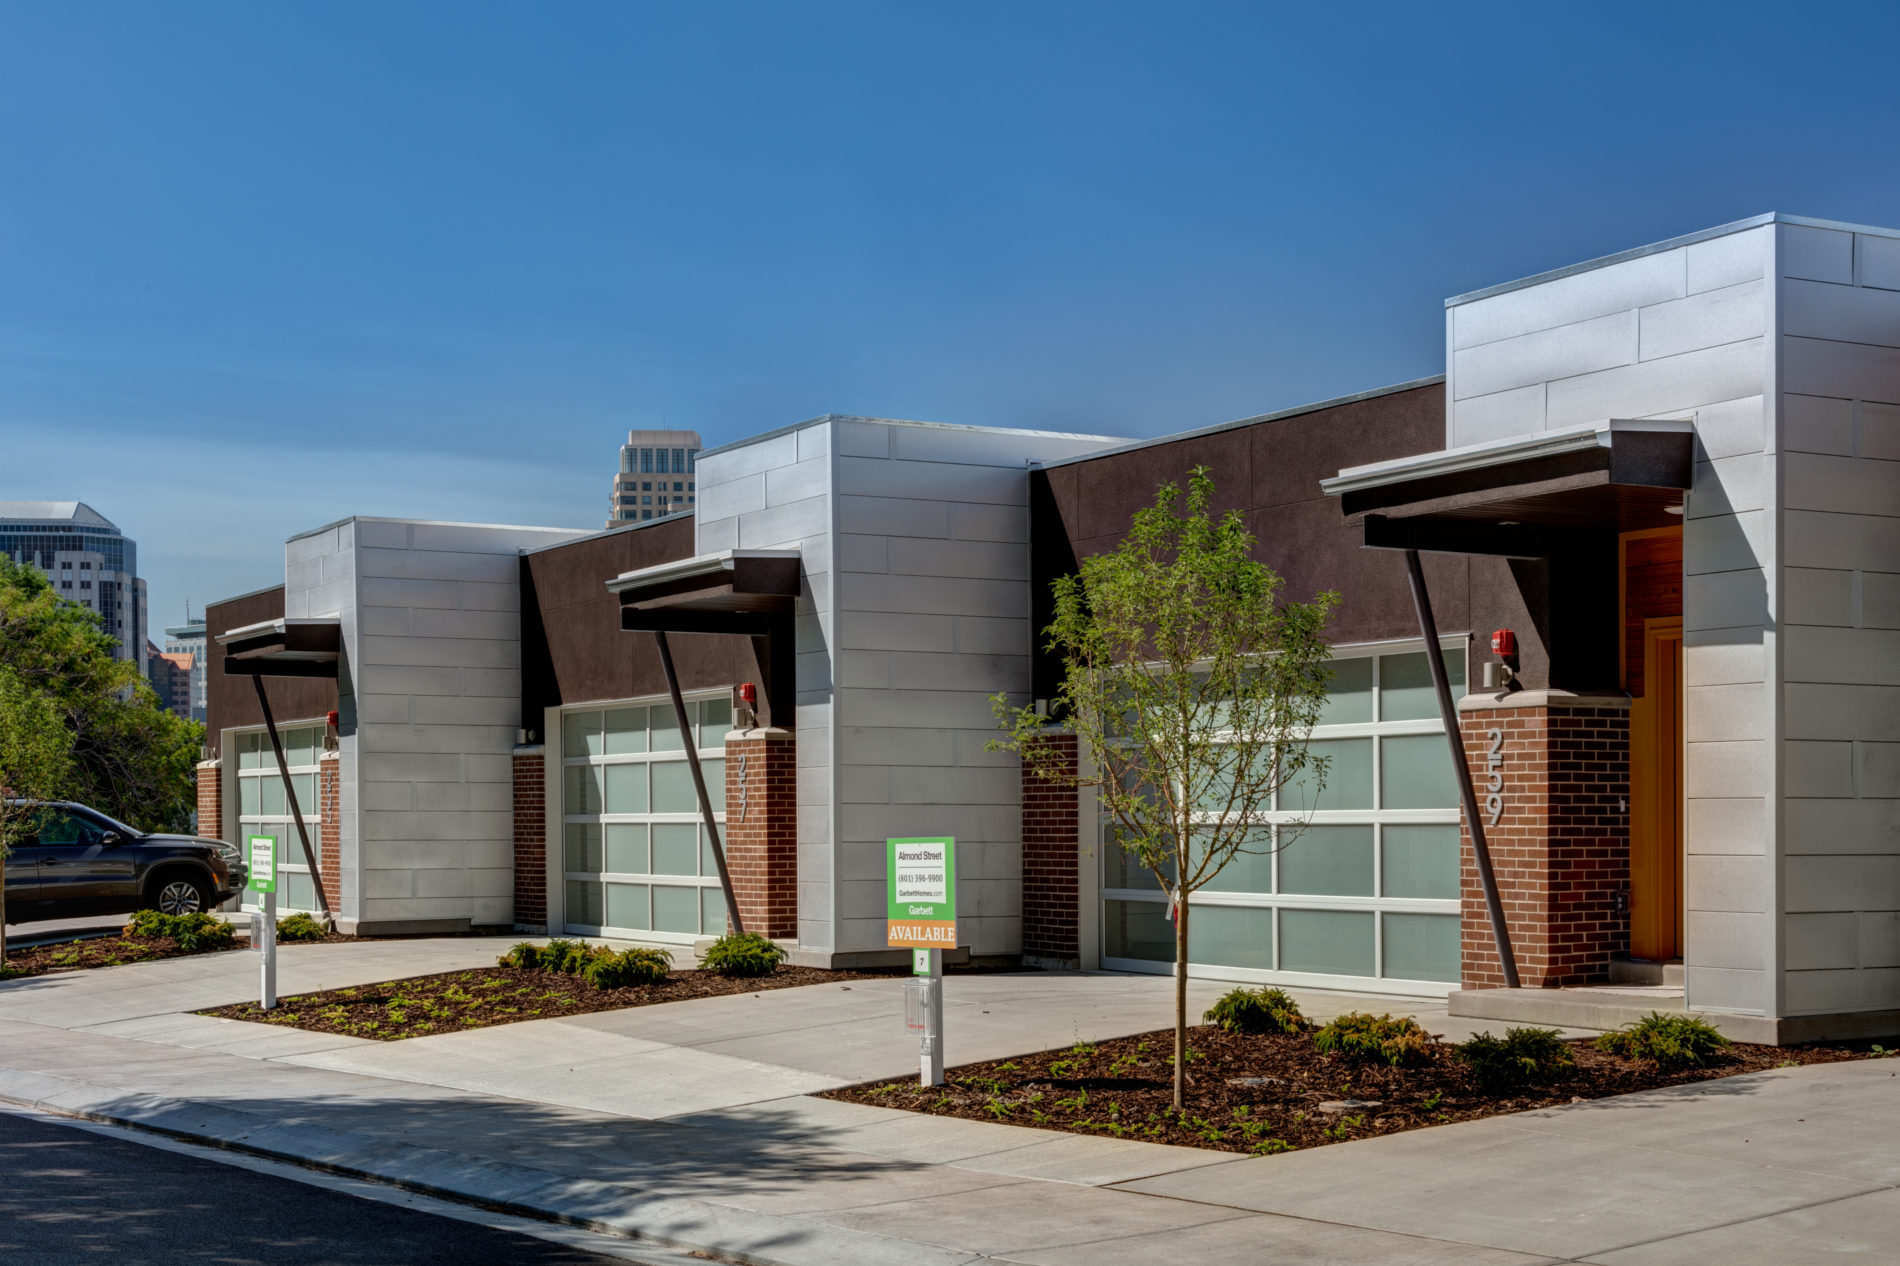 mixed materials used for modern townhome architecture design